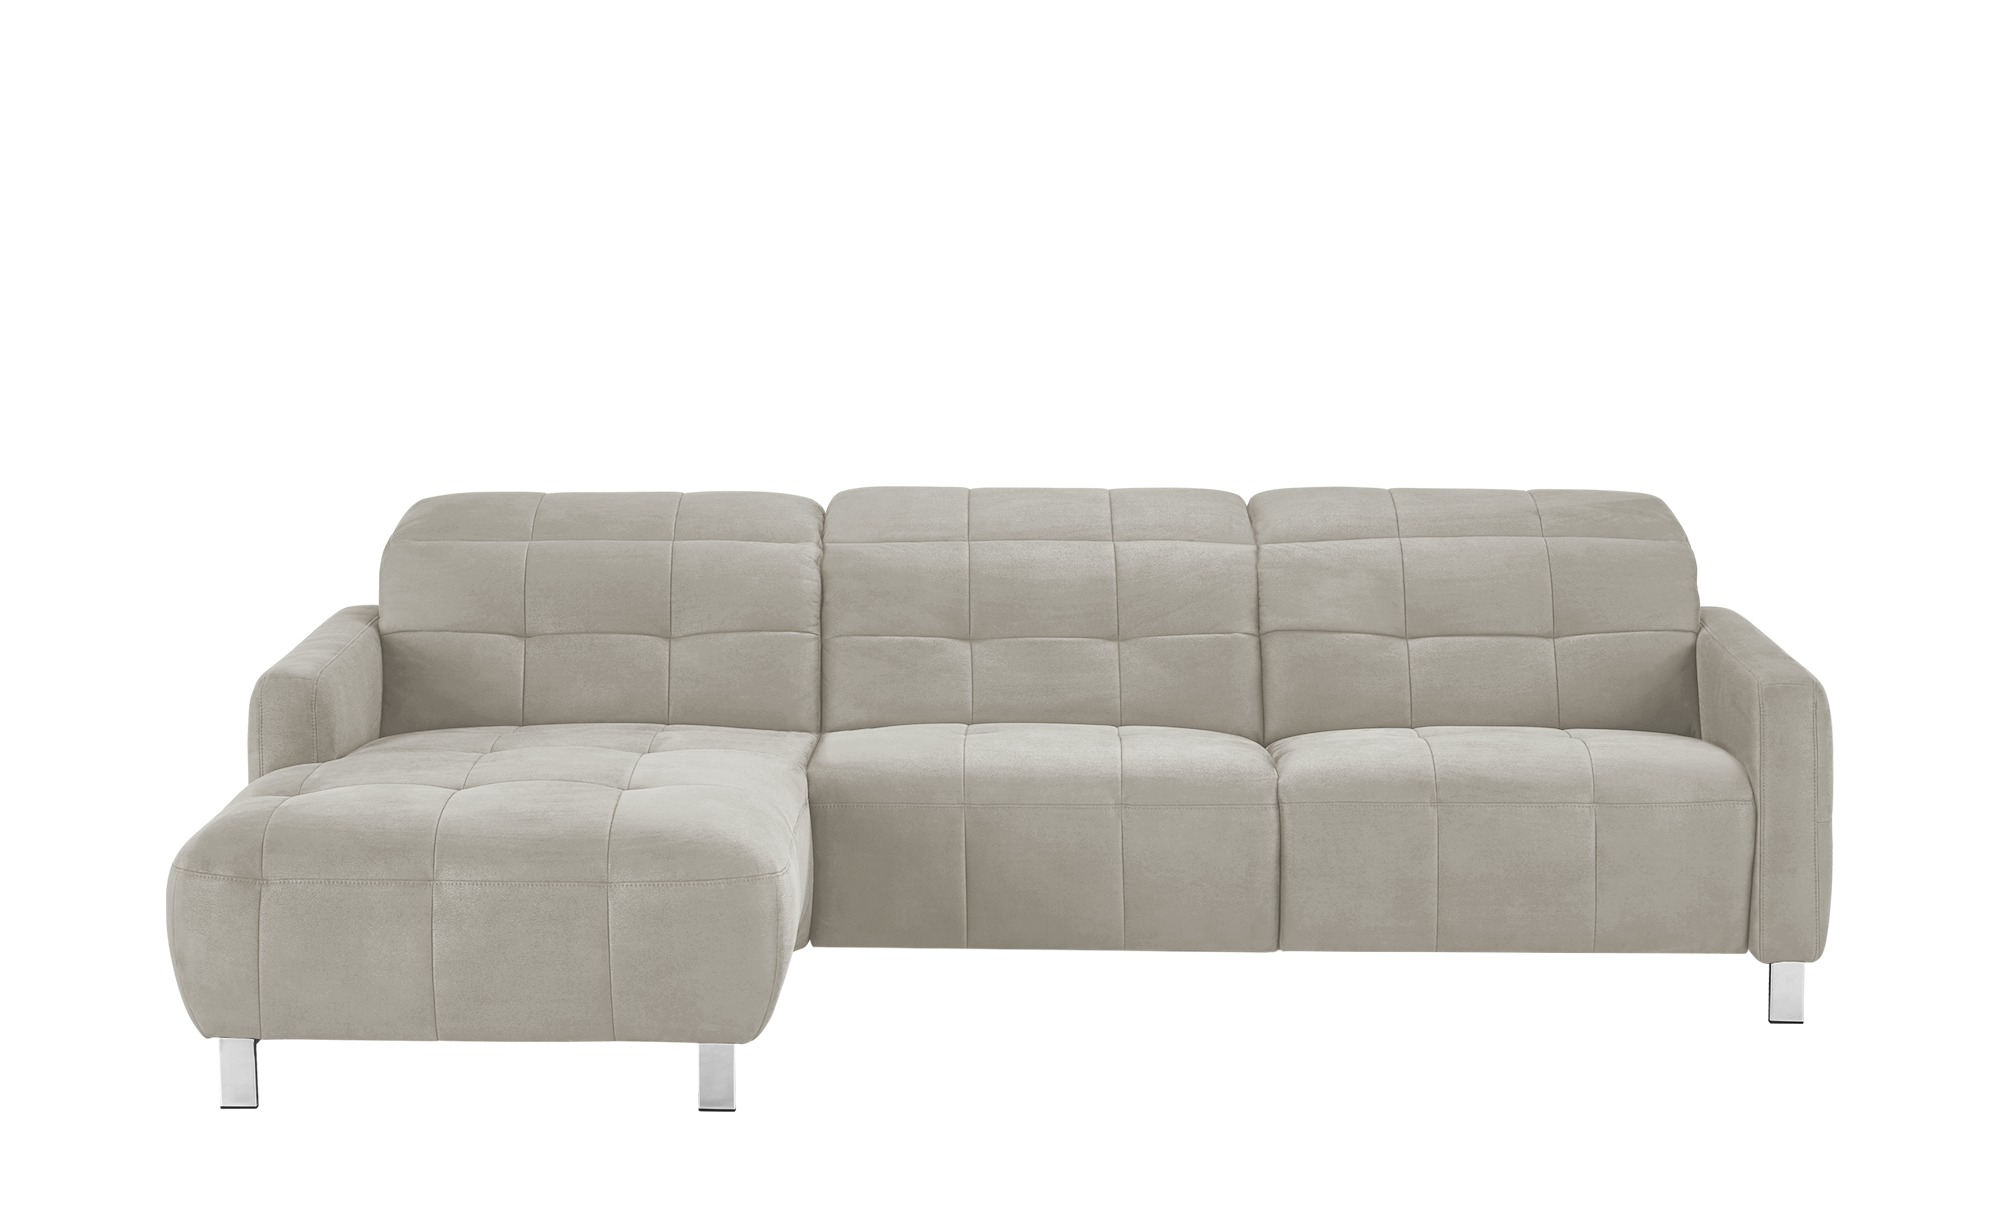 wohnwert ecksofa maya breite h he 84 cm creme online. Black Bedroom Furniture Sets. Home Design Ideas